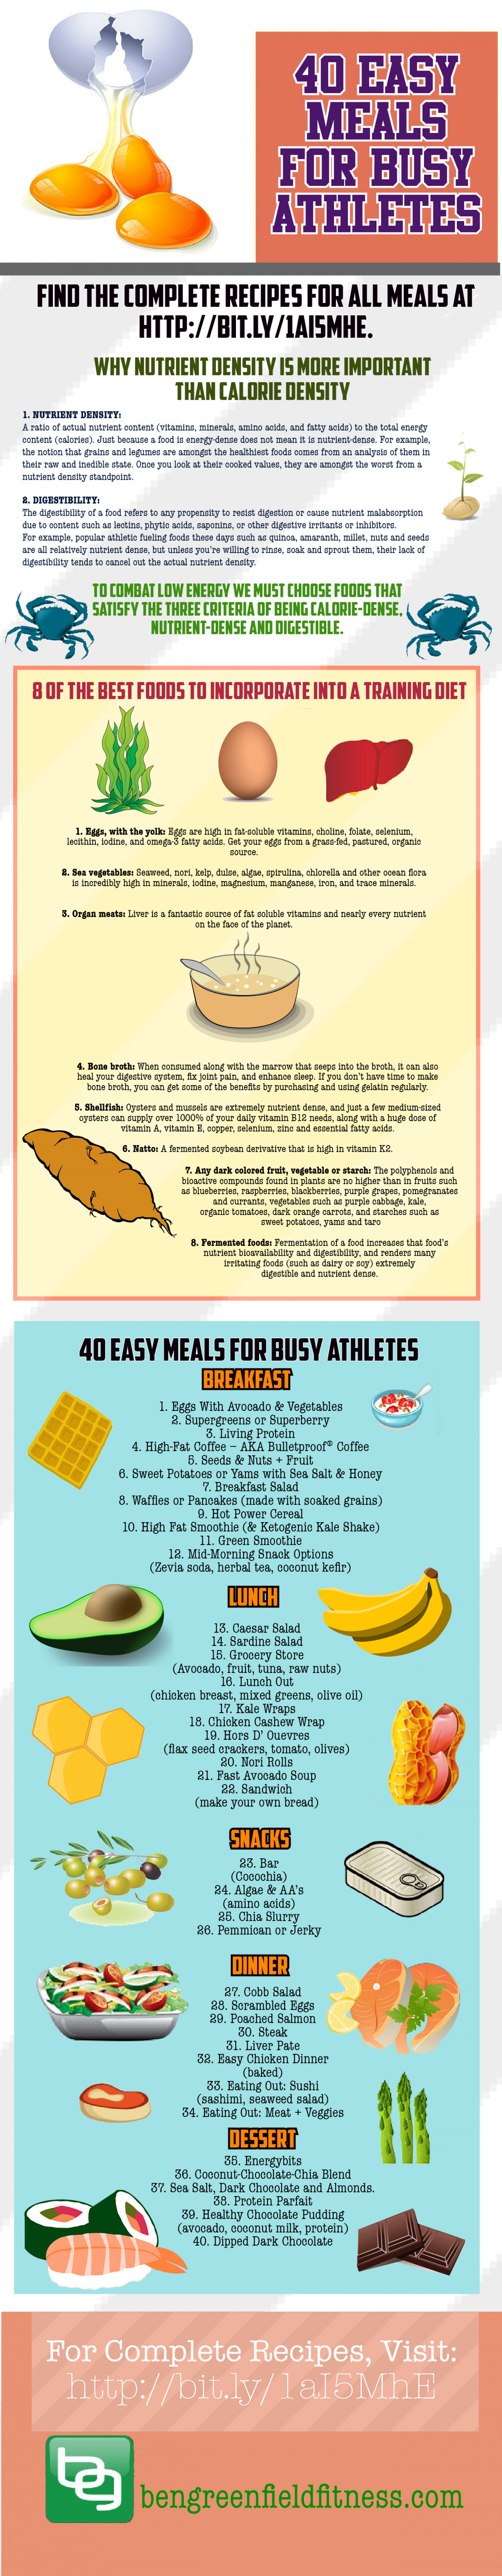 40 Meals For Busy Athletes Infographic